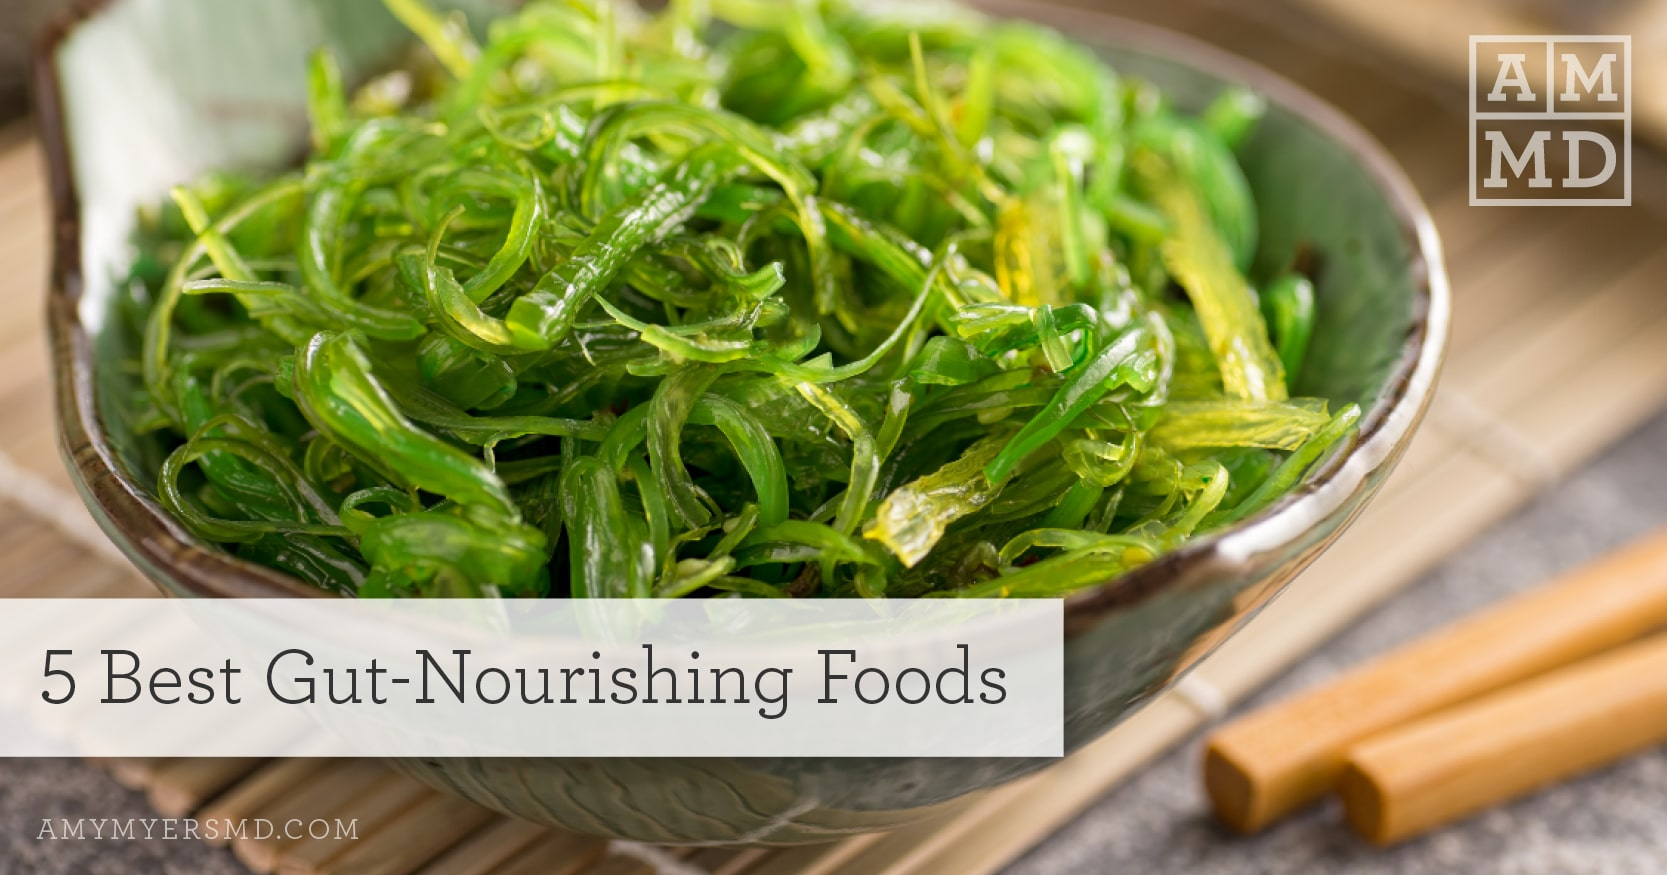 5 Best Gut-Nourishing Foods - Bowl of Greens - Featured Image - Amy Myers MD